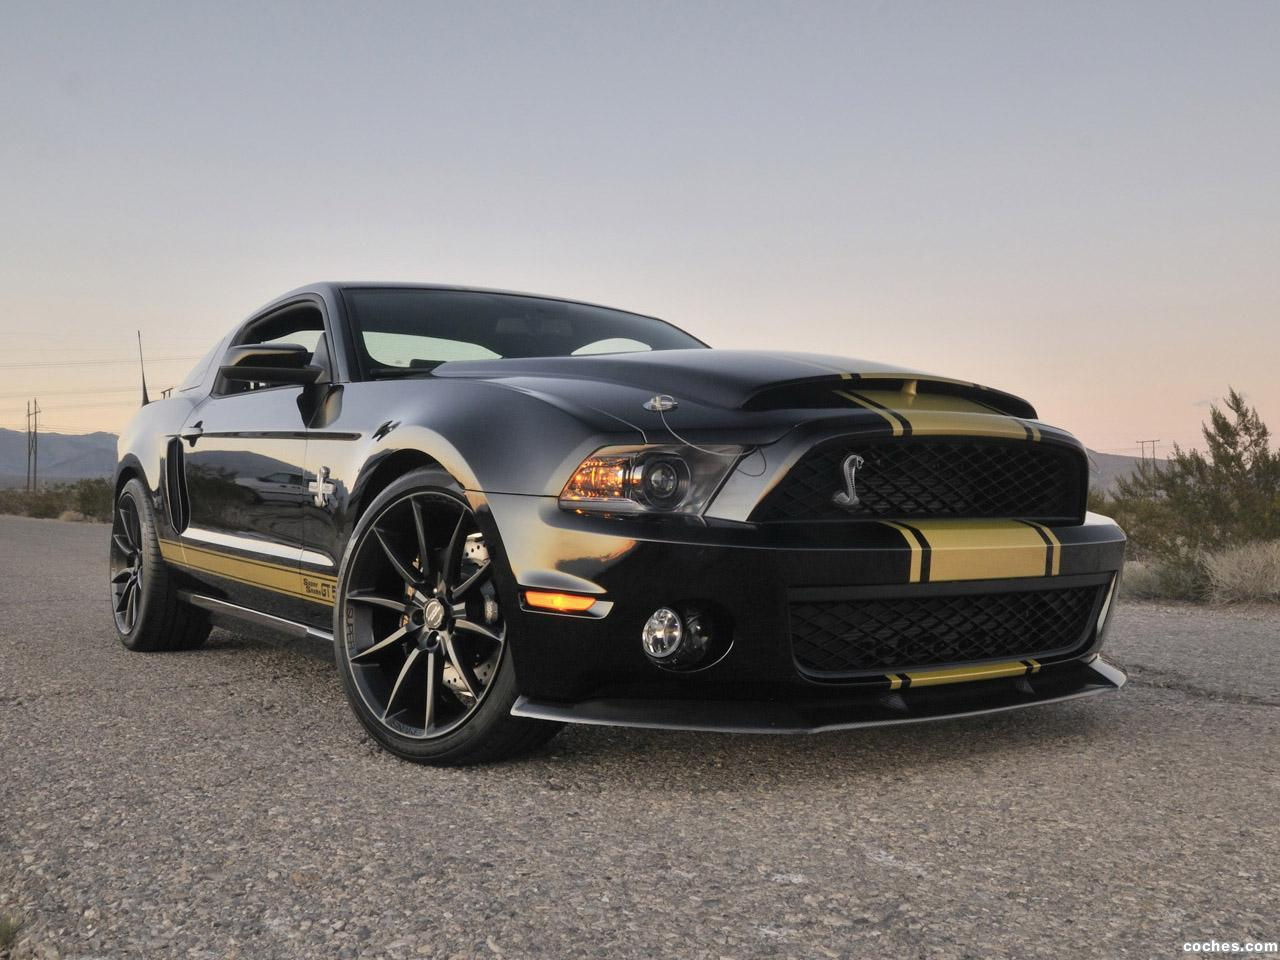 Ford Shelby Mustang GT500 Super Snake 50th Anniversary 2012